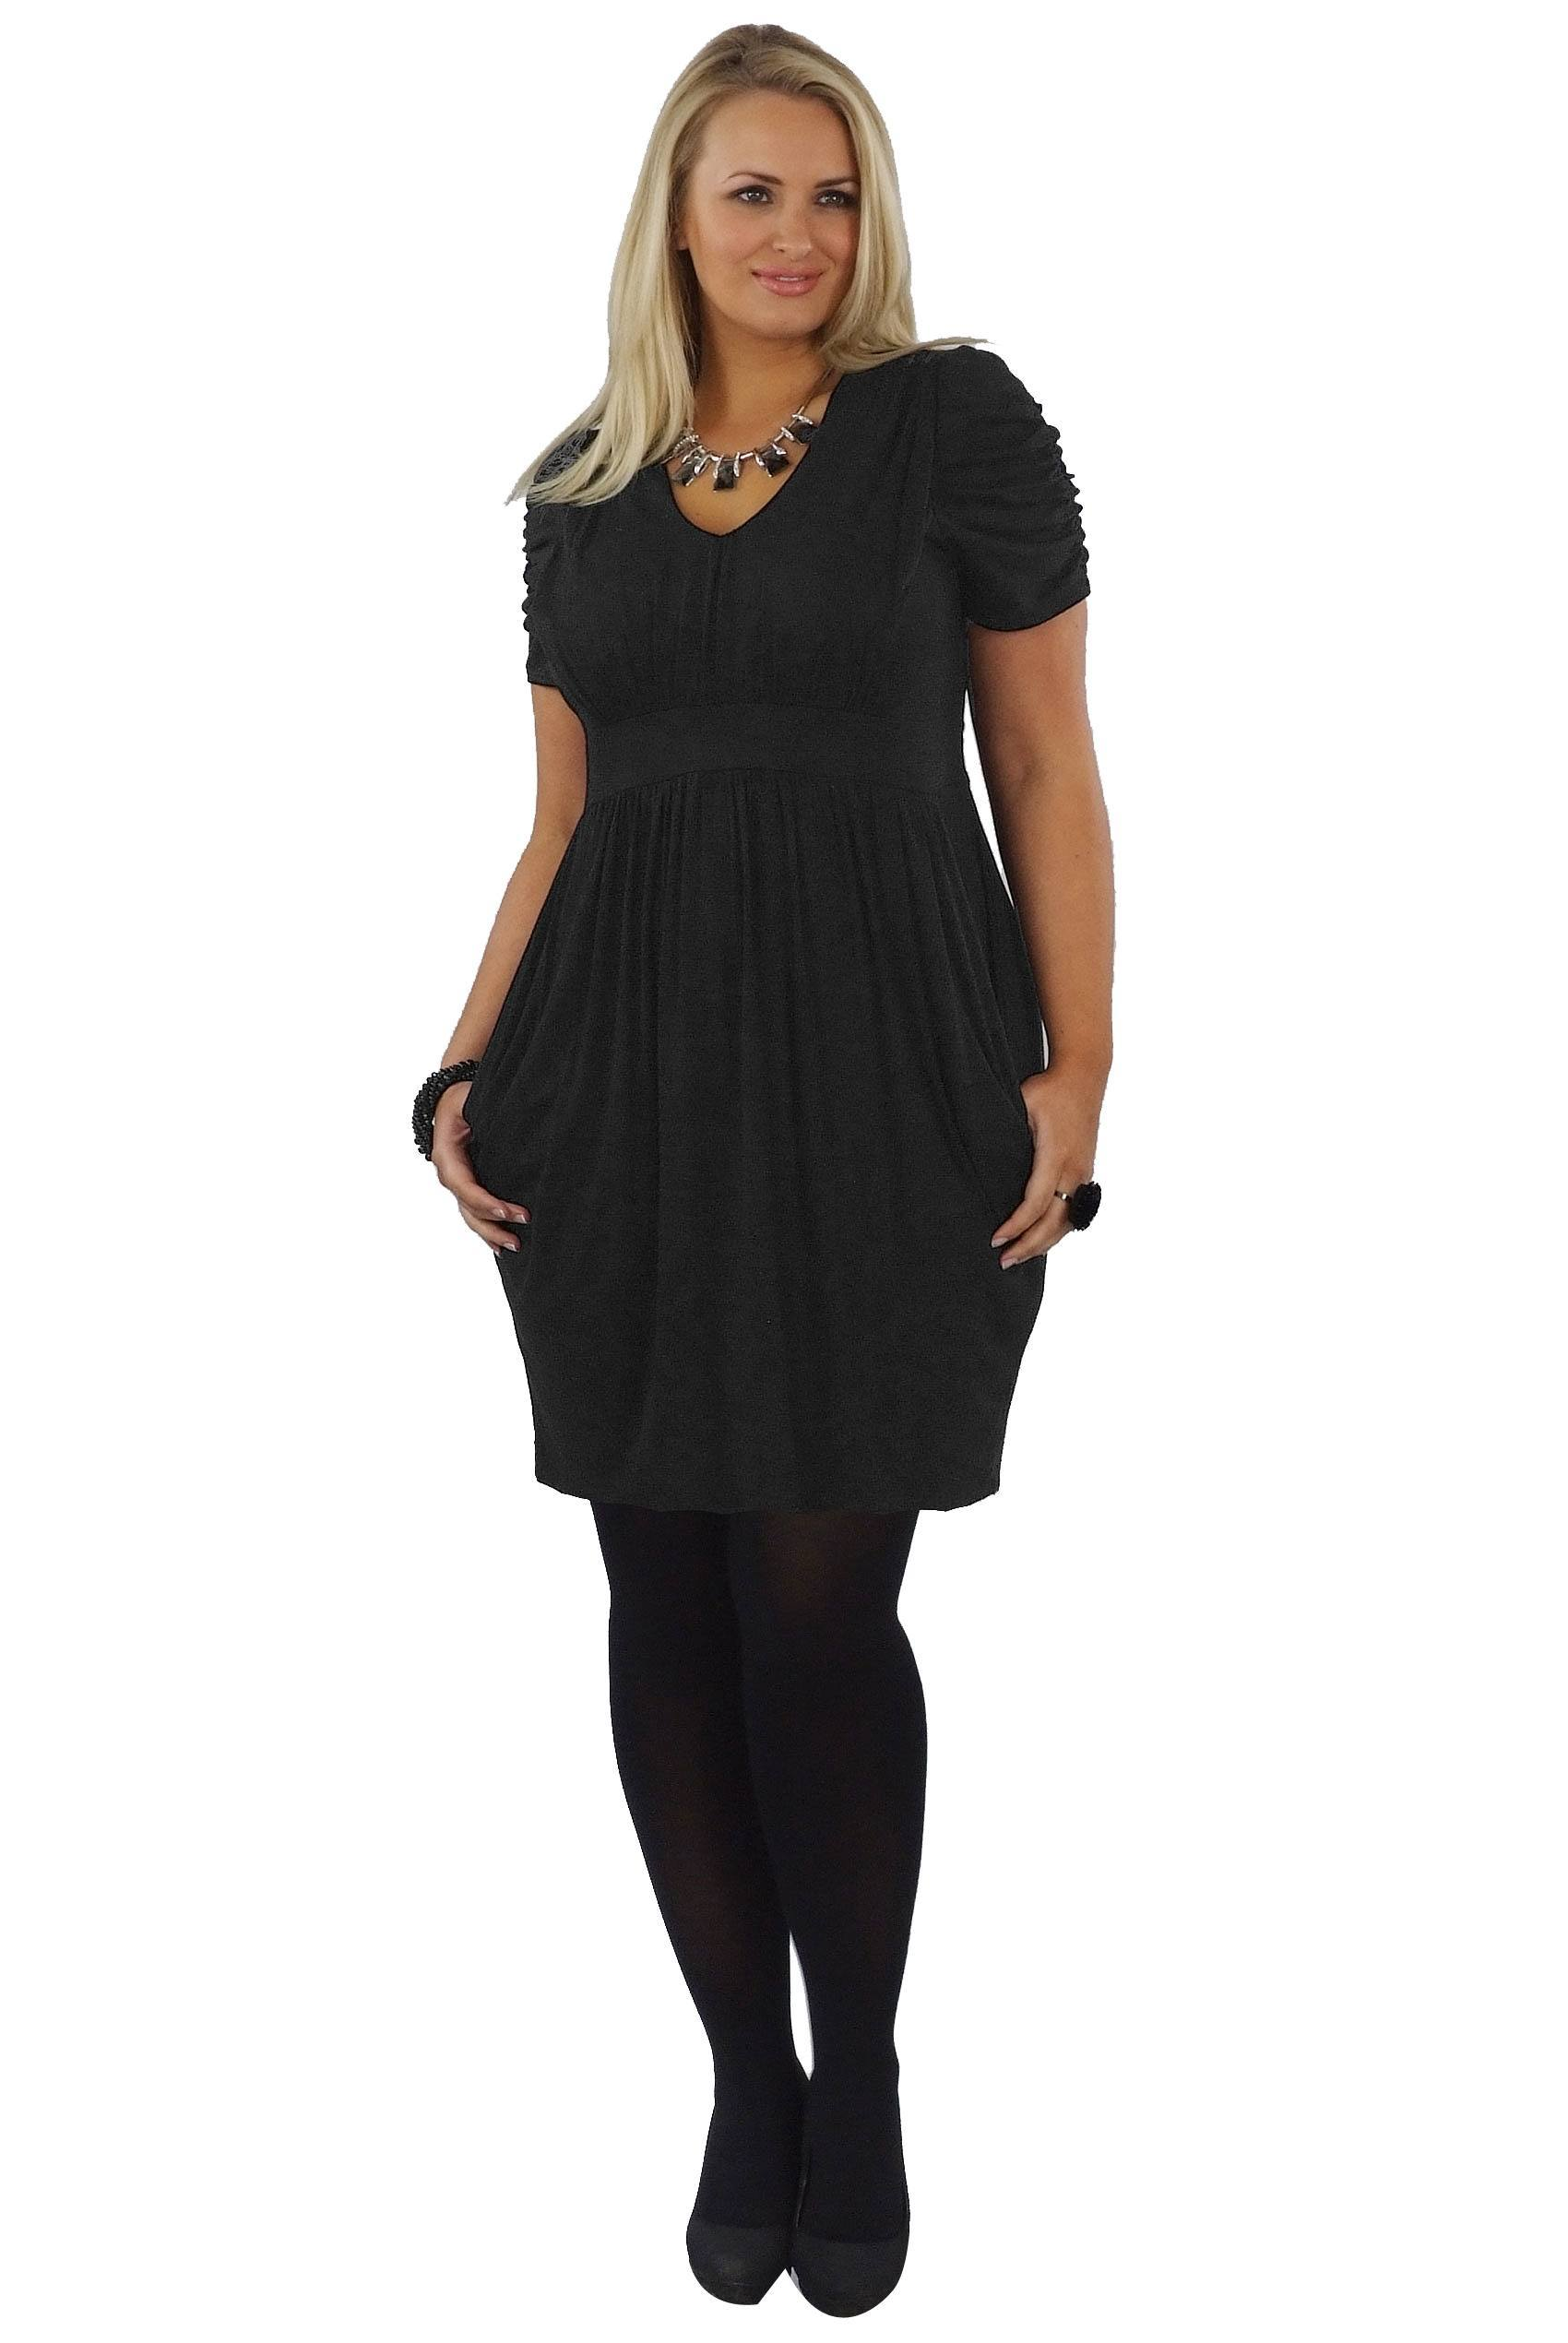 Best clothes for plus size women